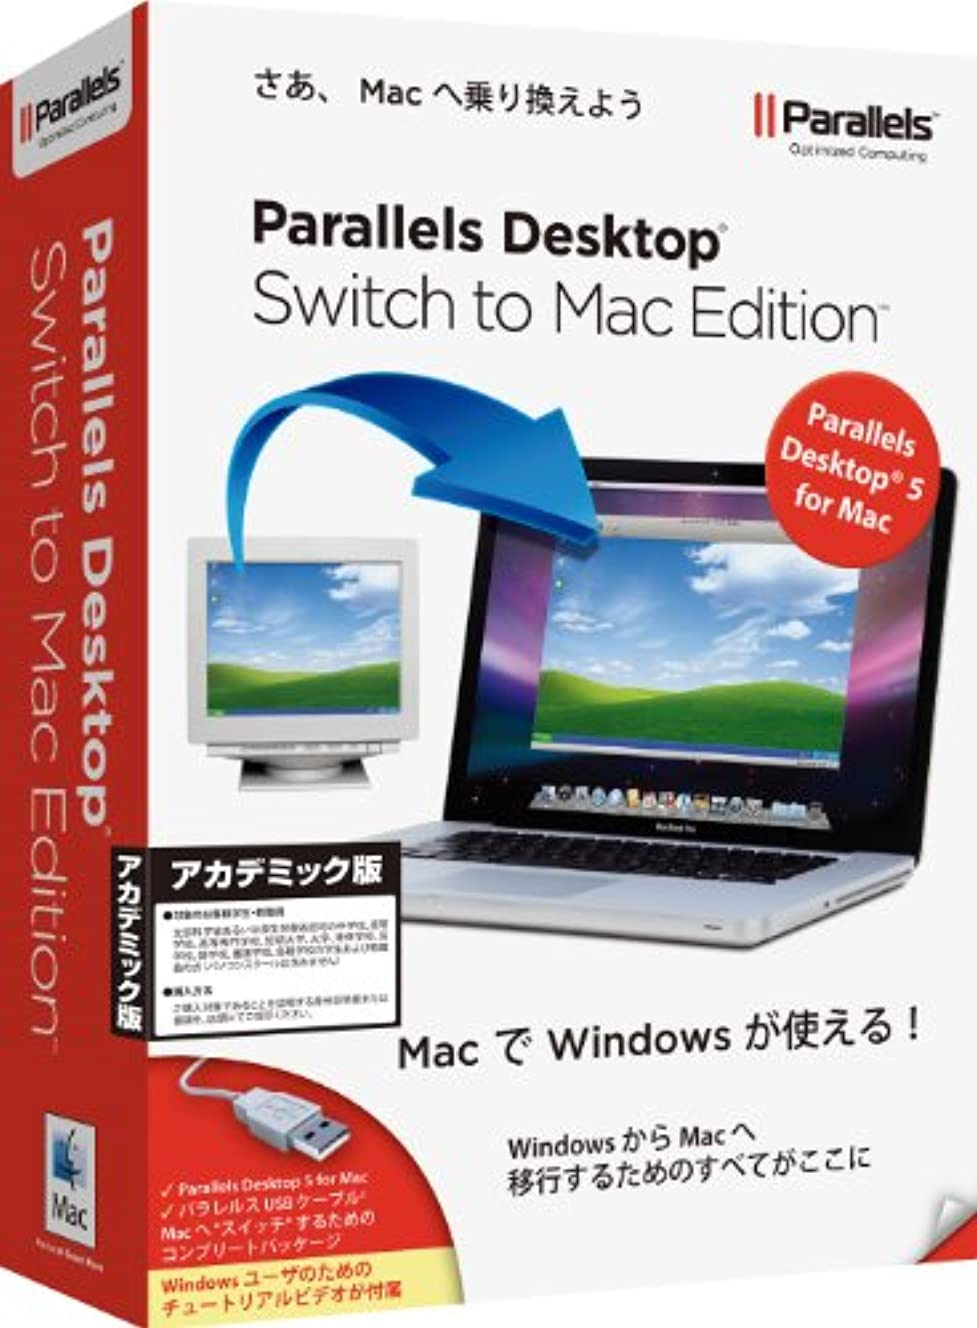 Parallels Desktop Switch to Mac Edition アカデミック版